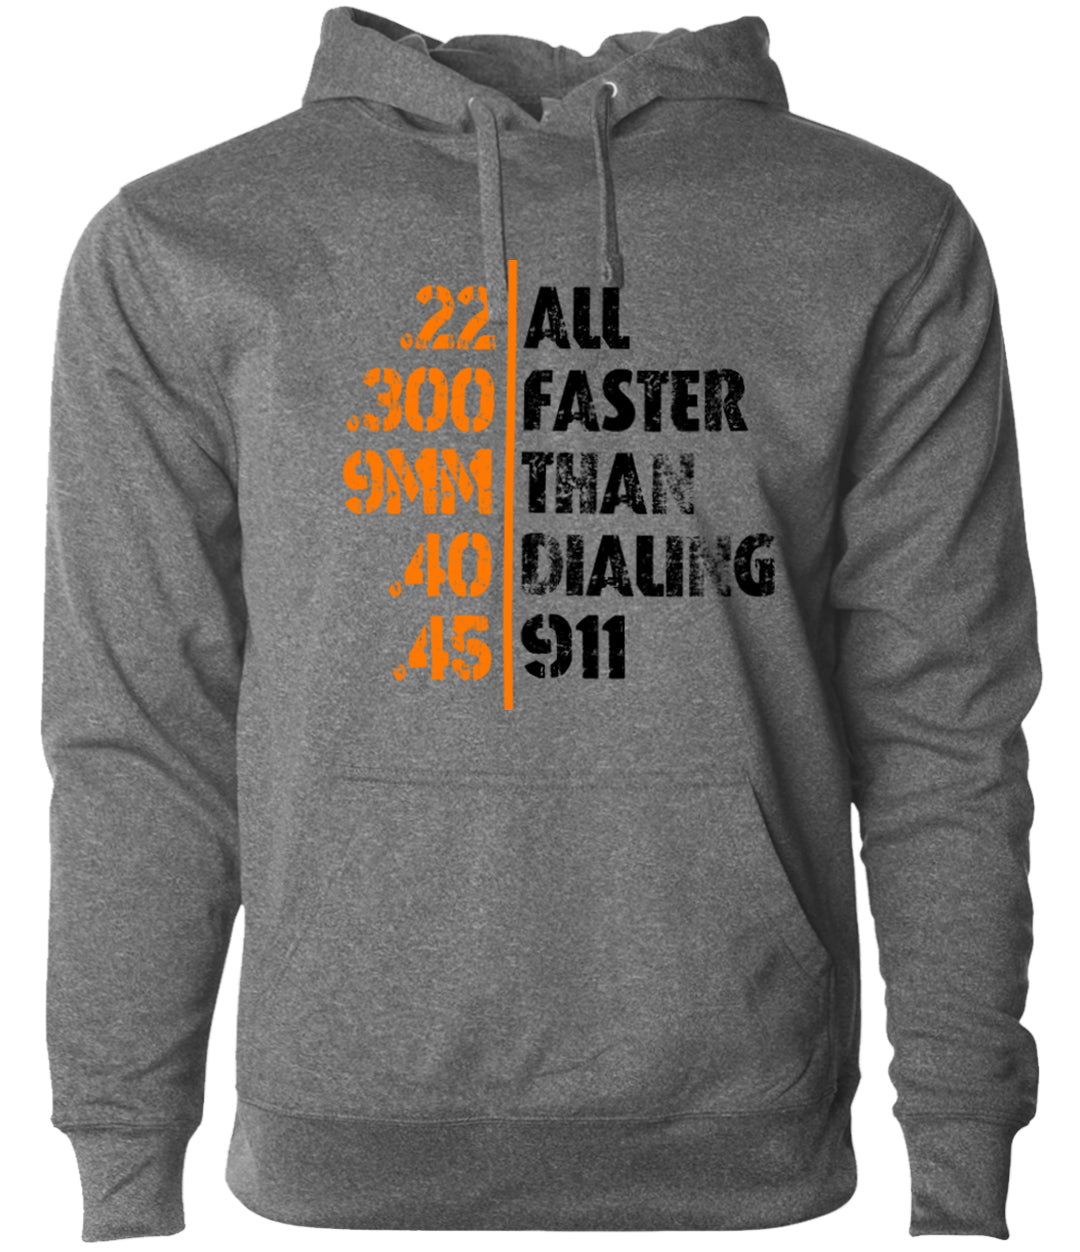 faster than 911 heather grey hoodie